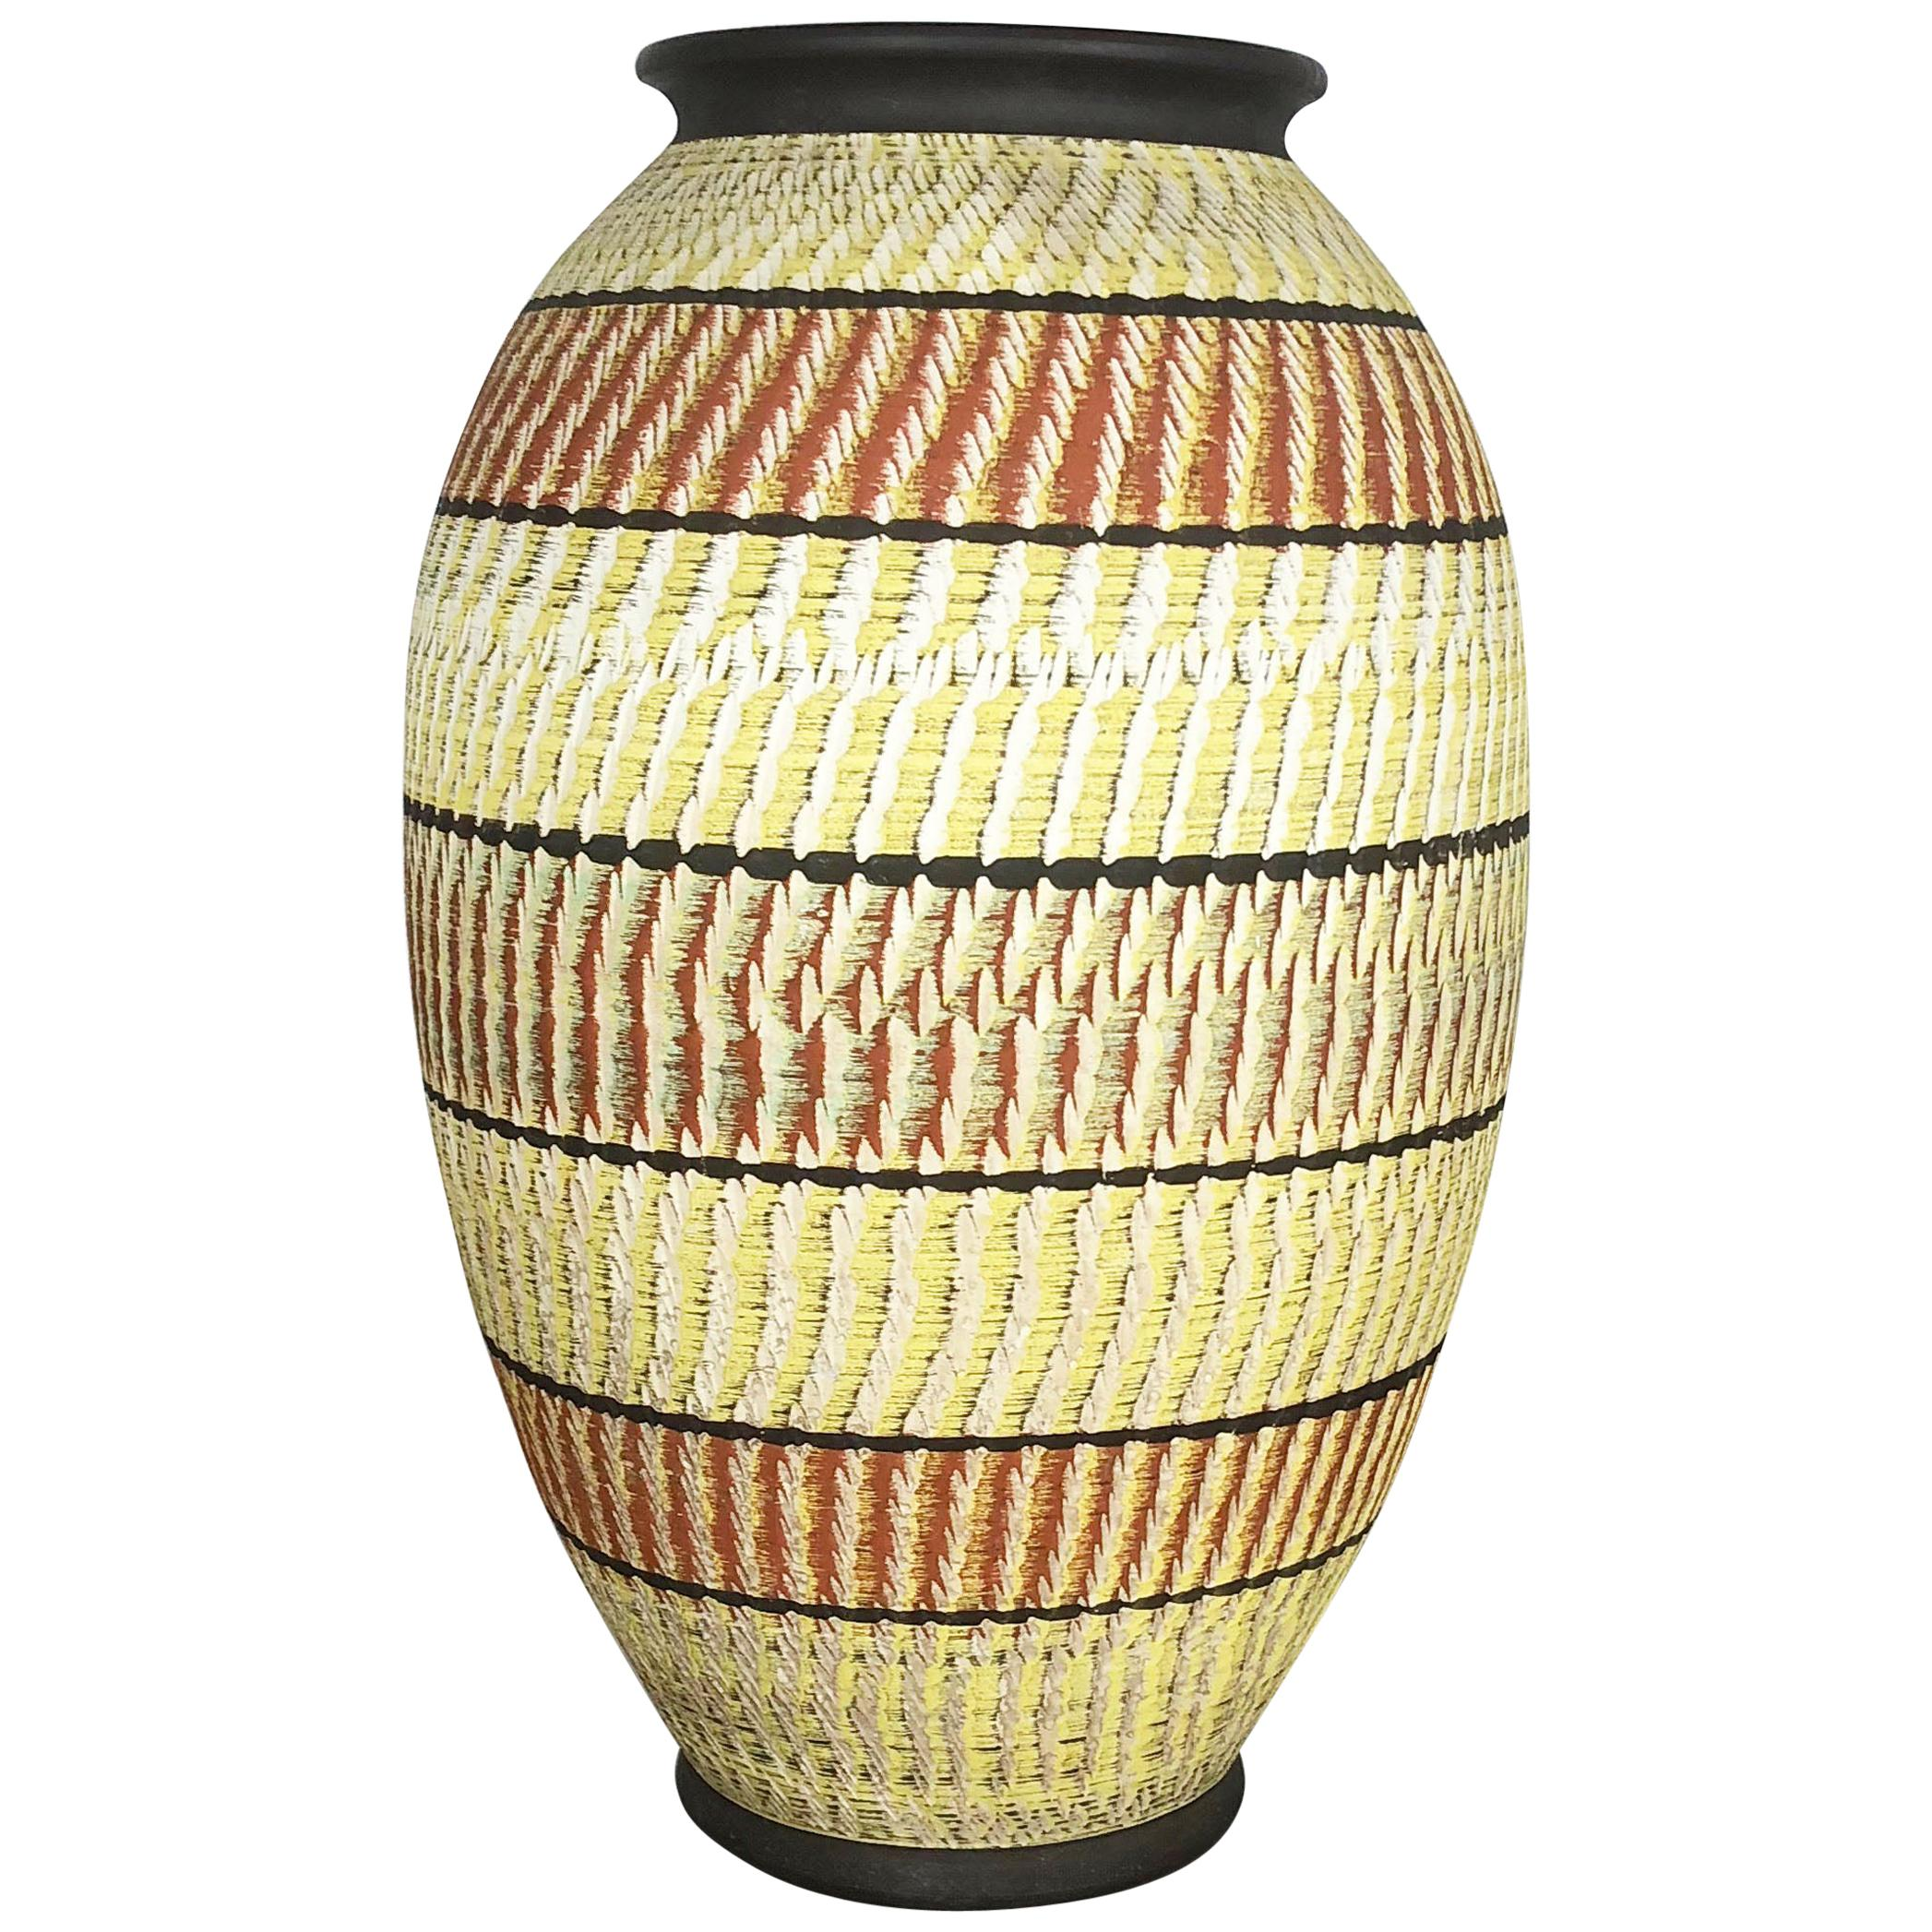 Large abstract Ceramic Pottery Floor Vase by Zöller and Born, Germany, 1950s